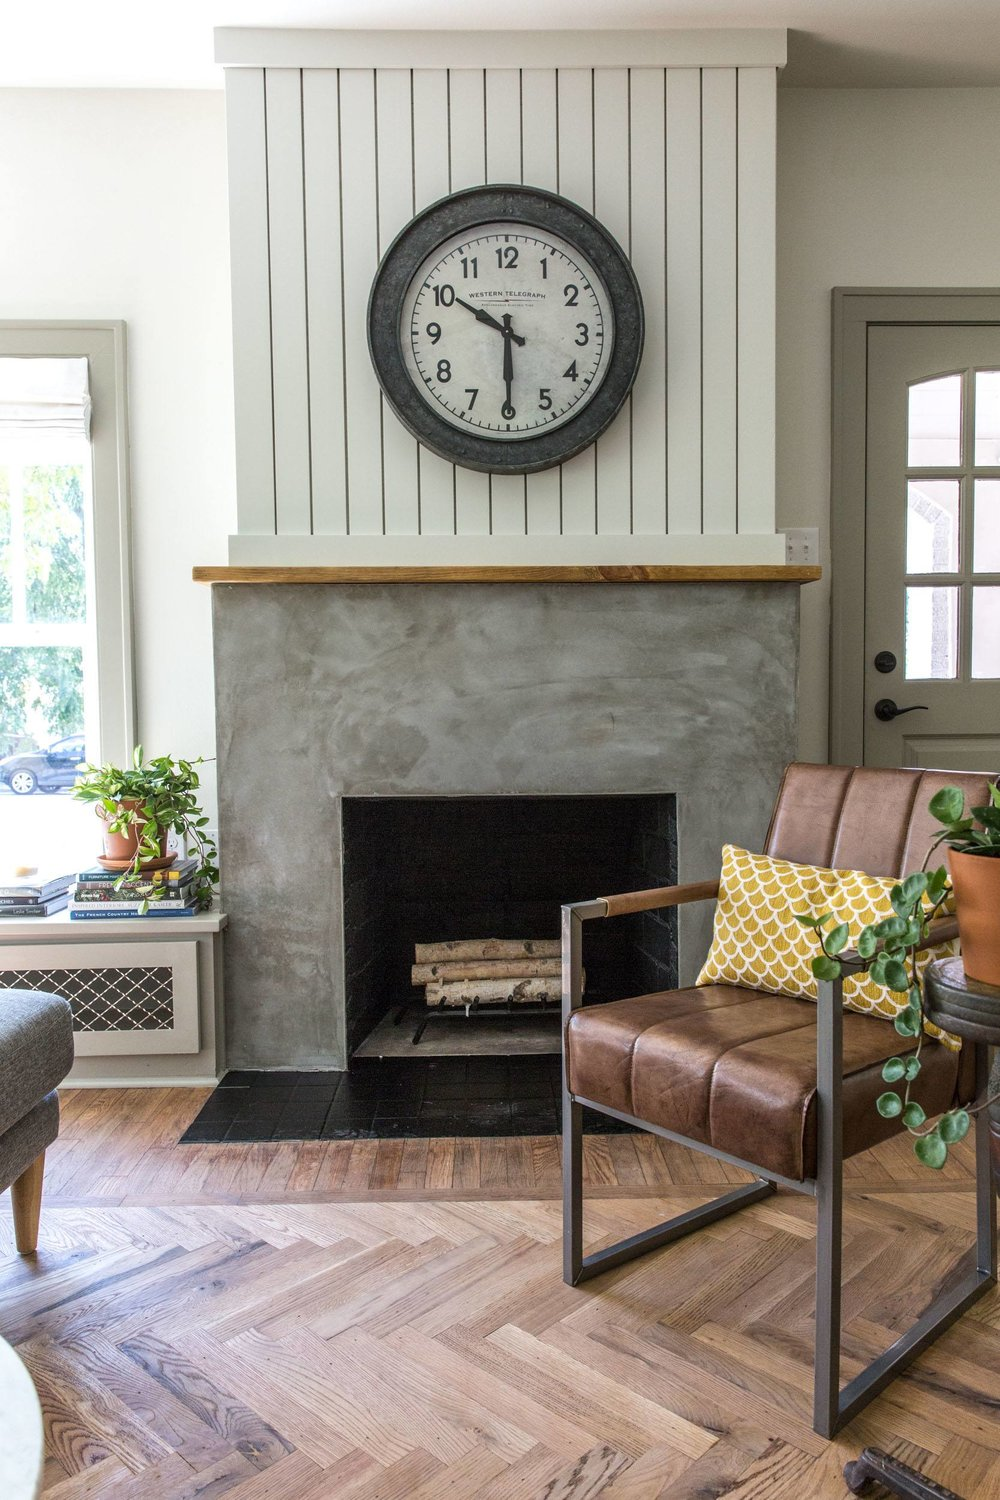 herringbone-flooring-concrete-fireplace-shiplap